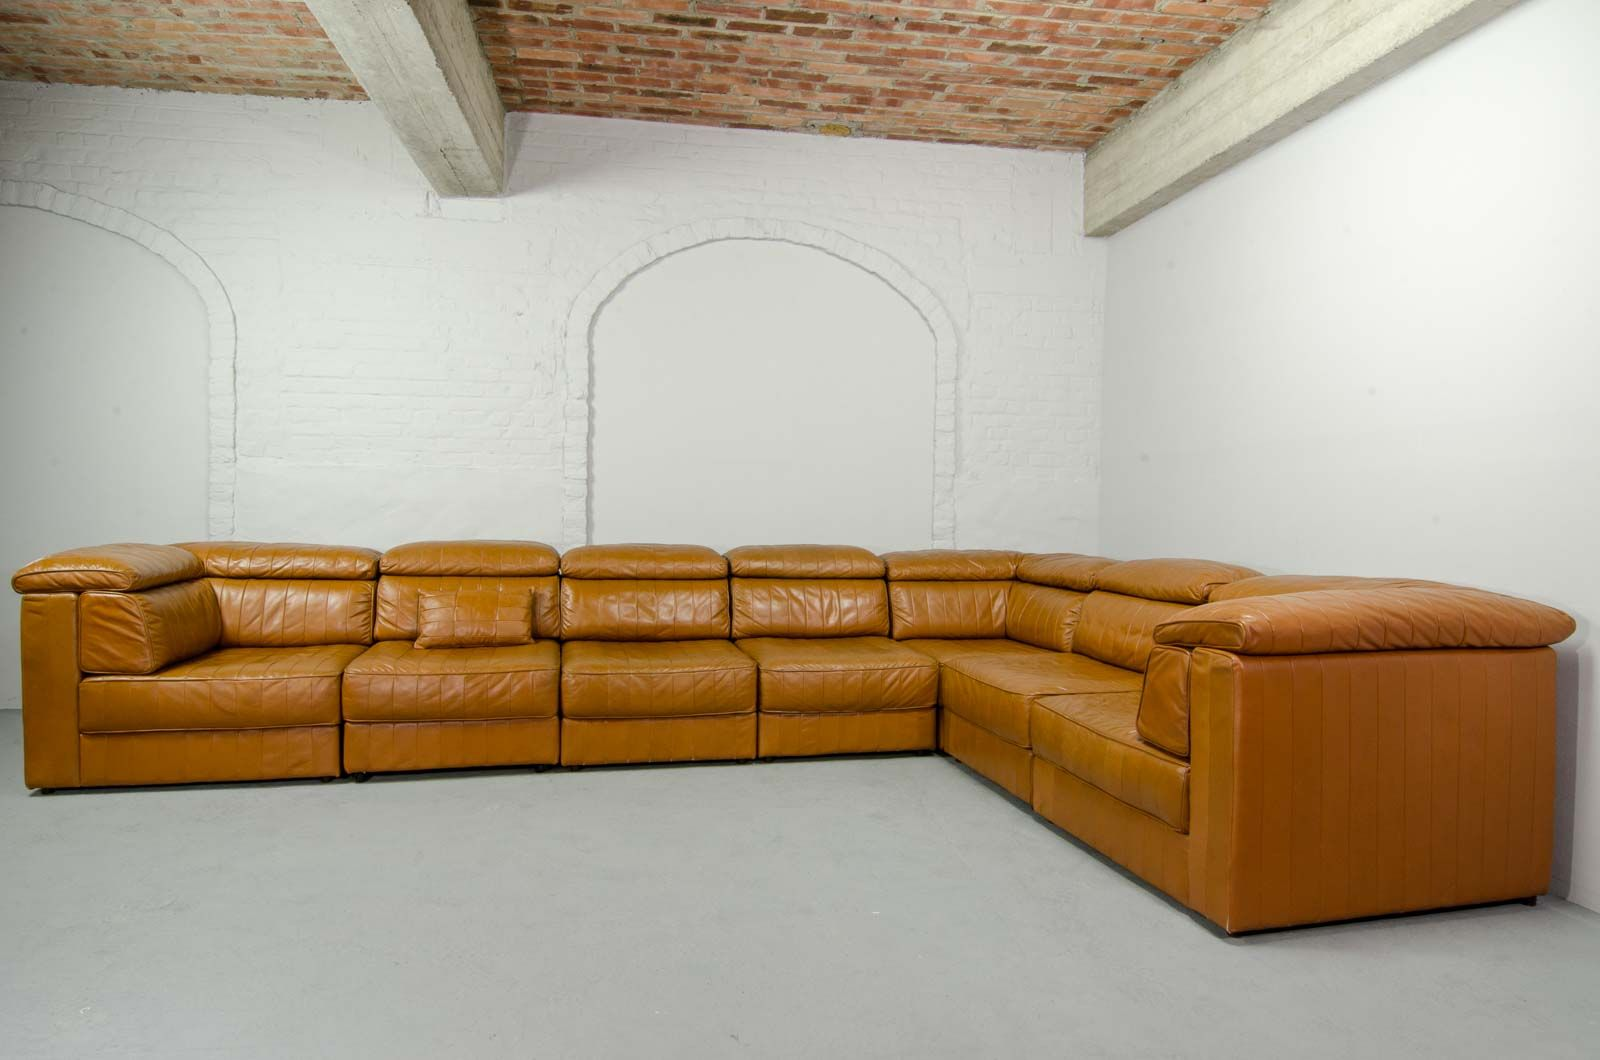 Mid-Century Modular Patchwork Sofa by Laauser, 1970s for sale at ...